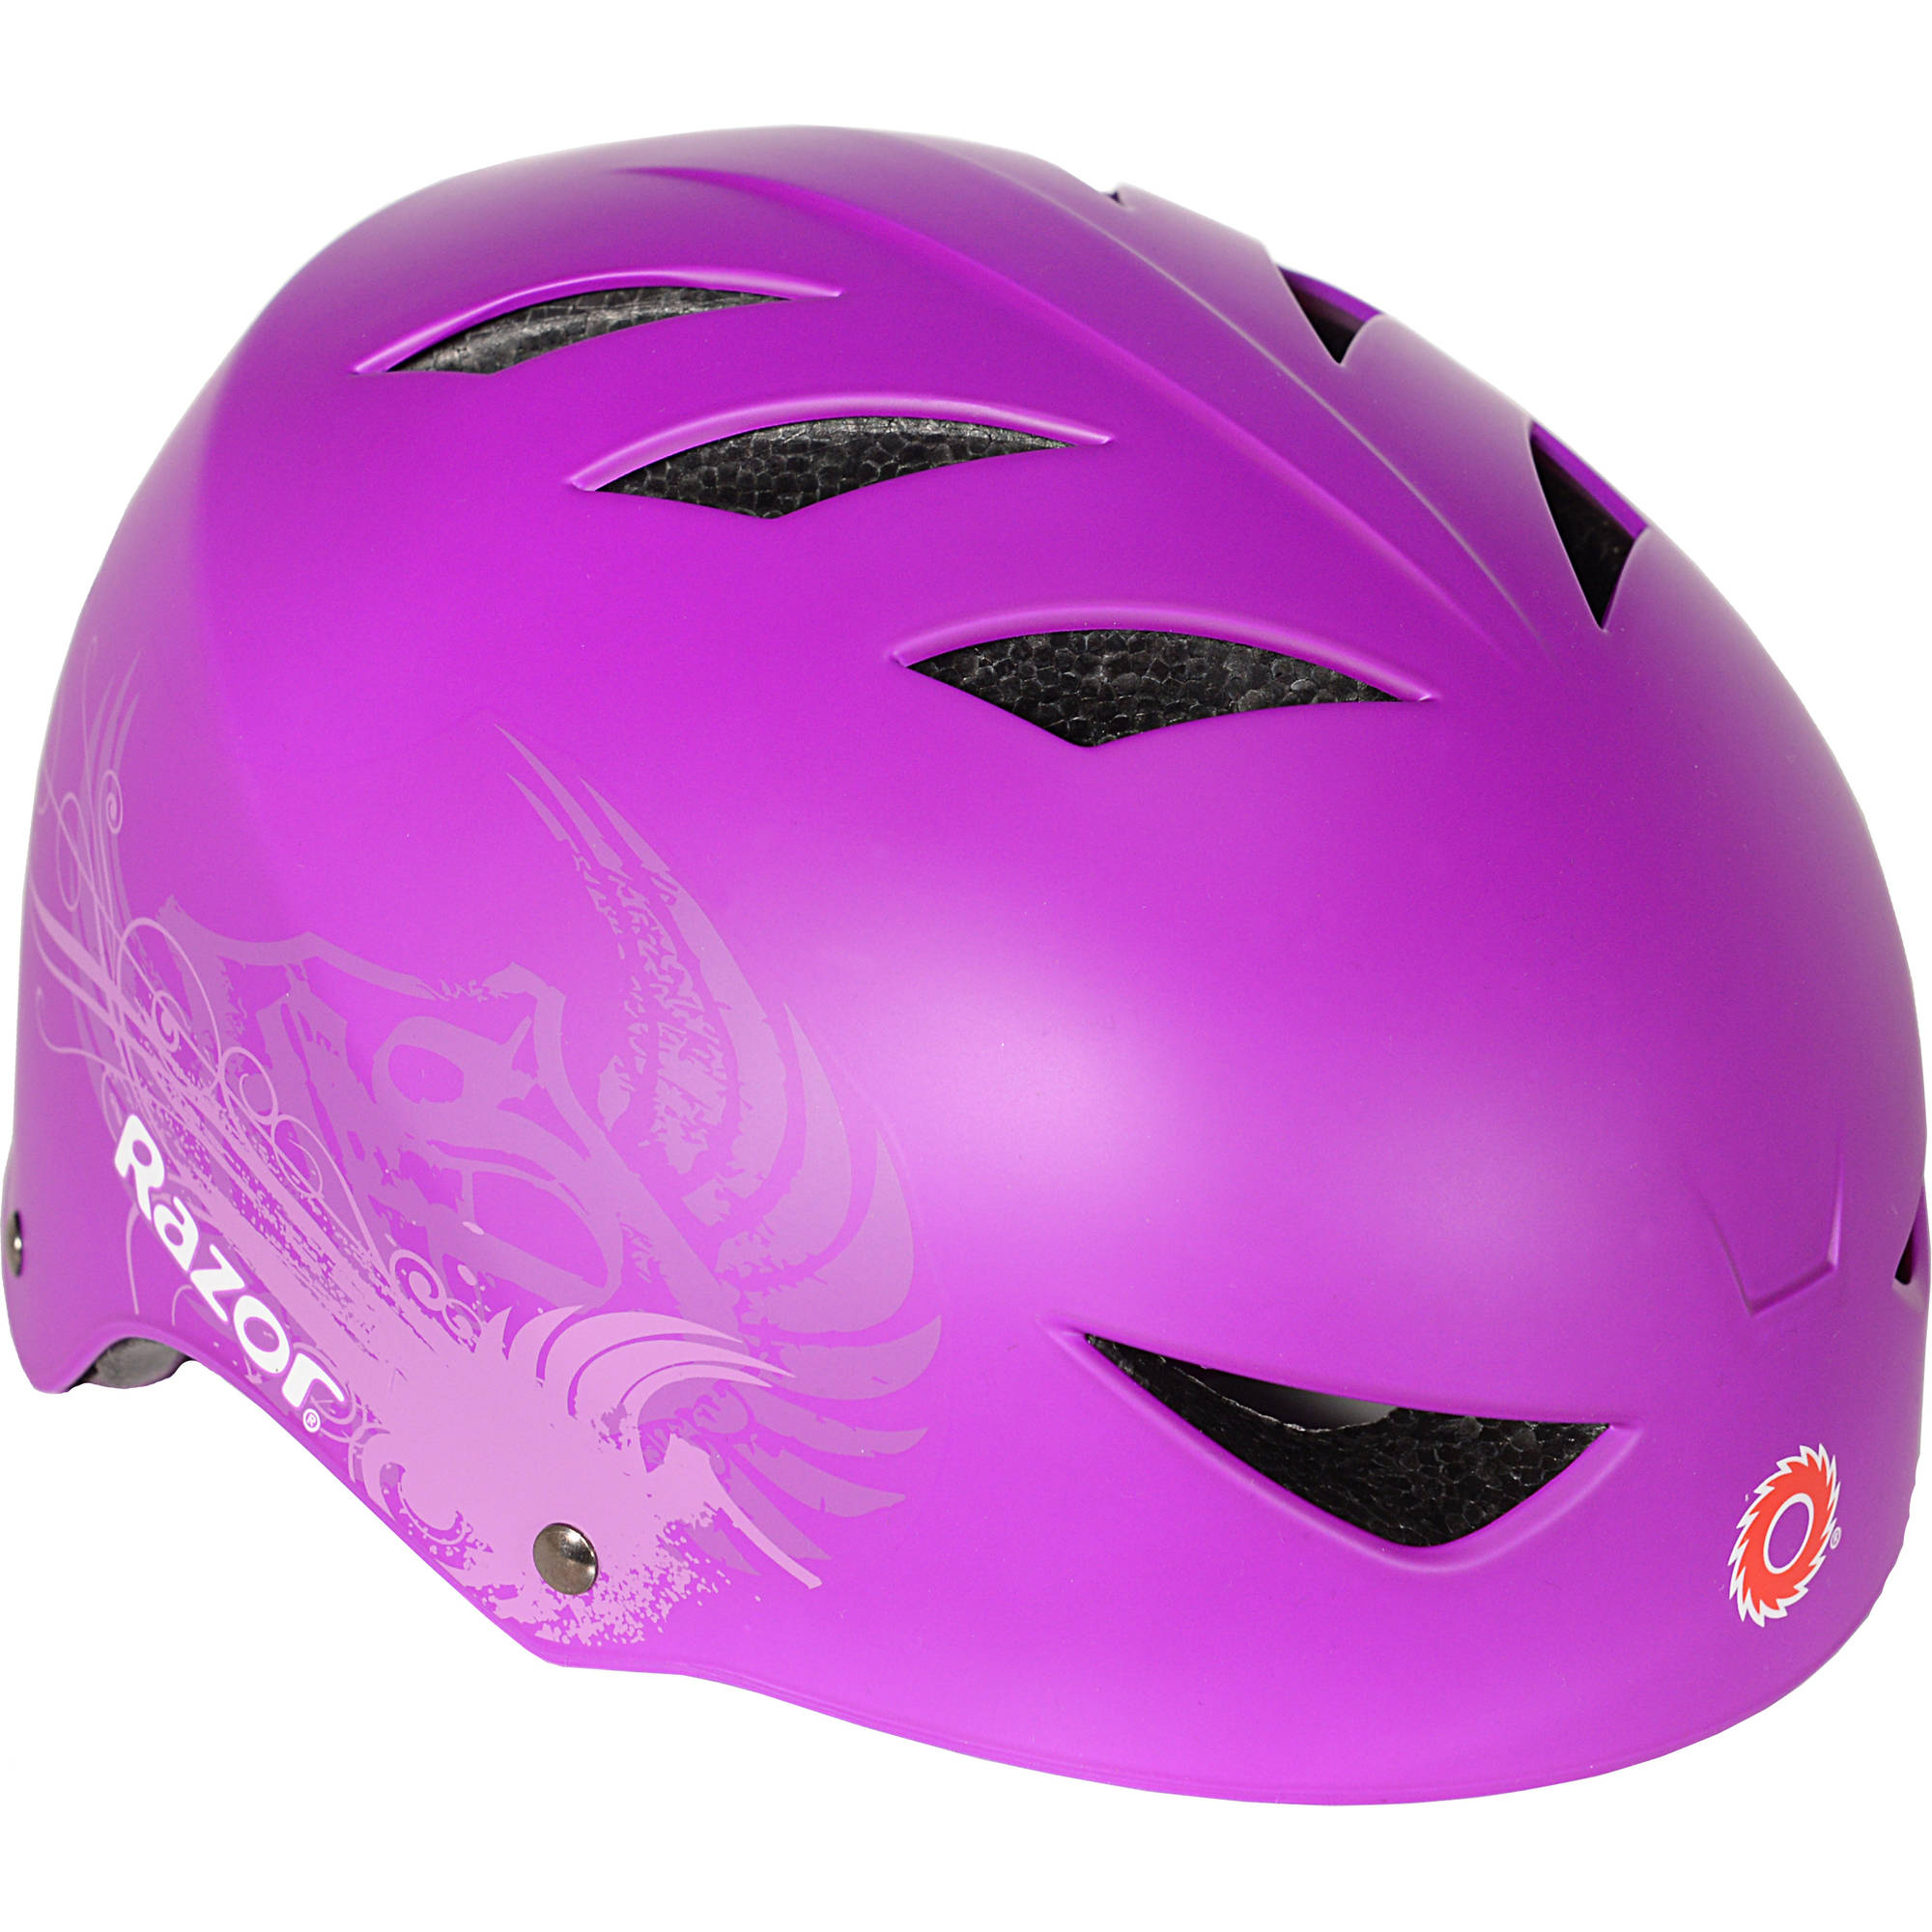 Razor 2 Cool Child's Helmet, Purple by Kent International Inc